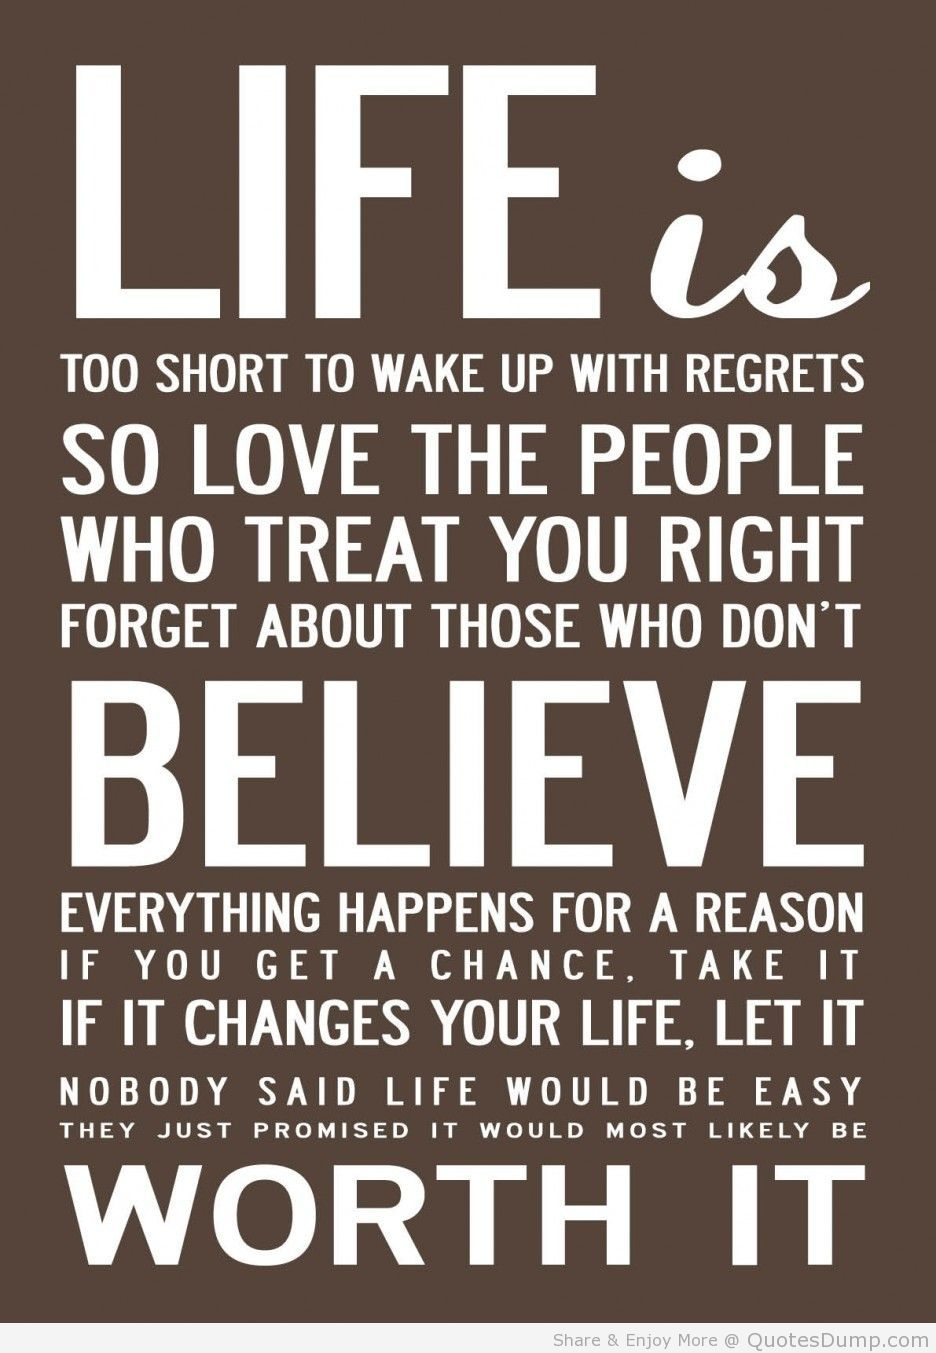 Life Is Too Short To Wake Up With Regrets So Love The People Who